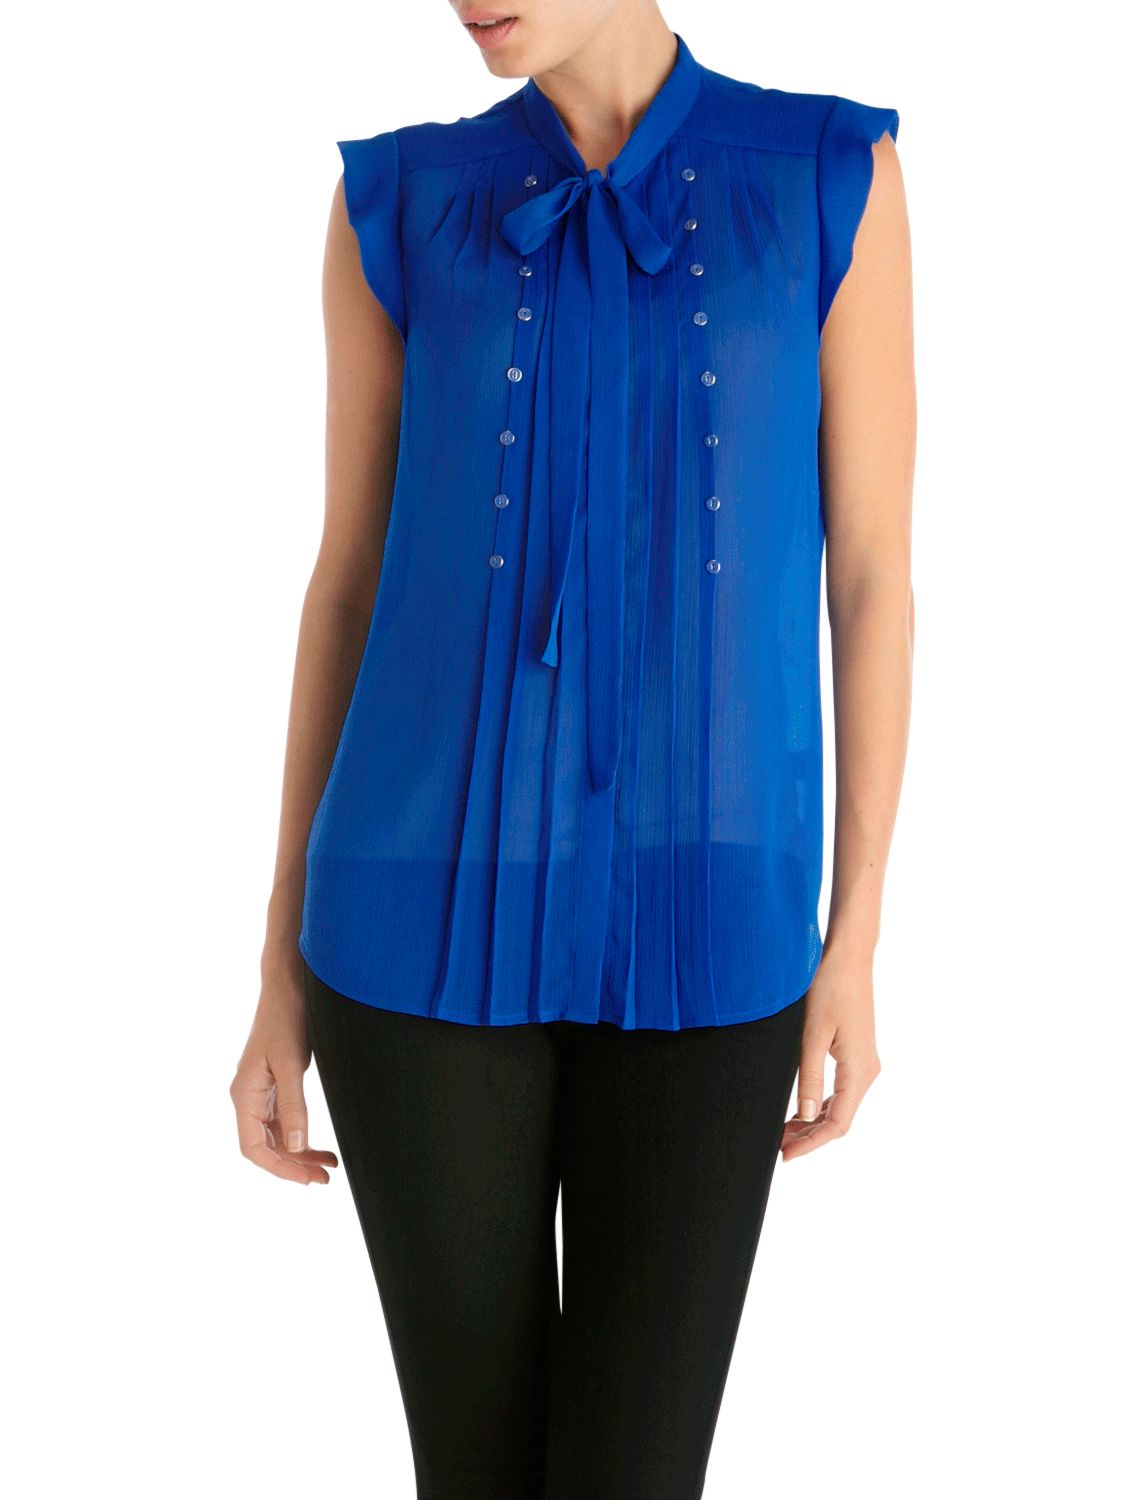 Oasis Crinkle and Button Tie Blouse, Blue product image